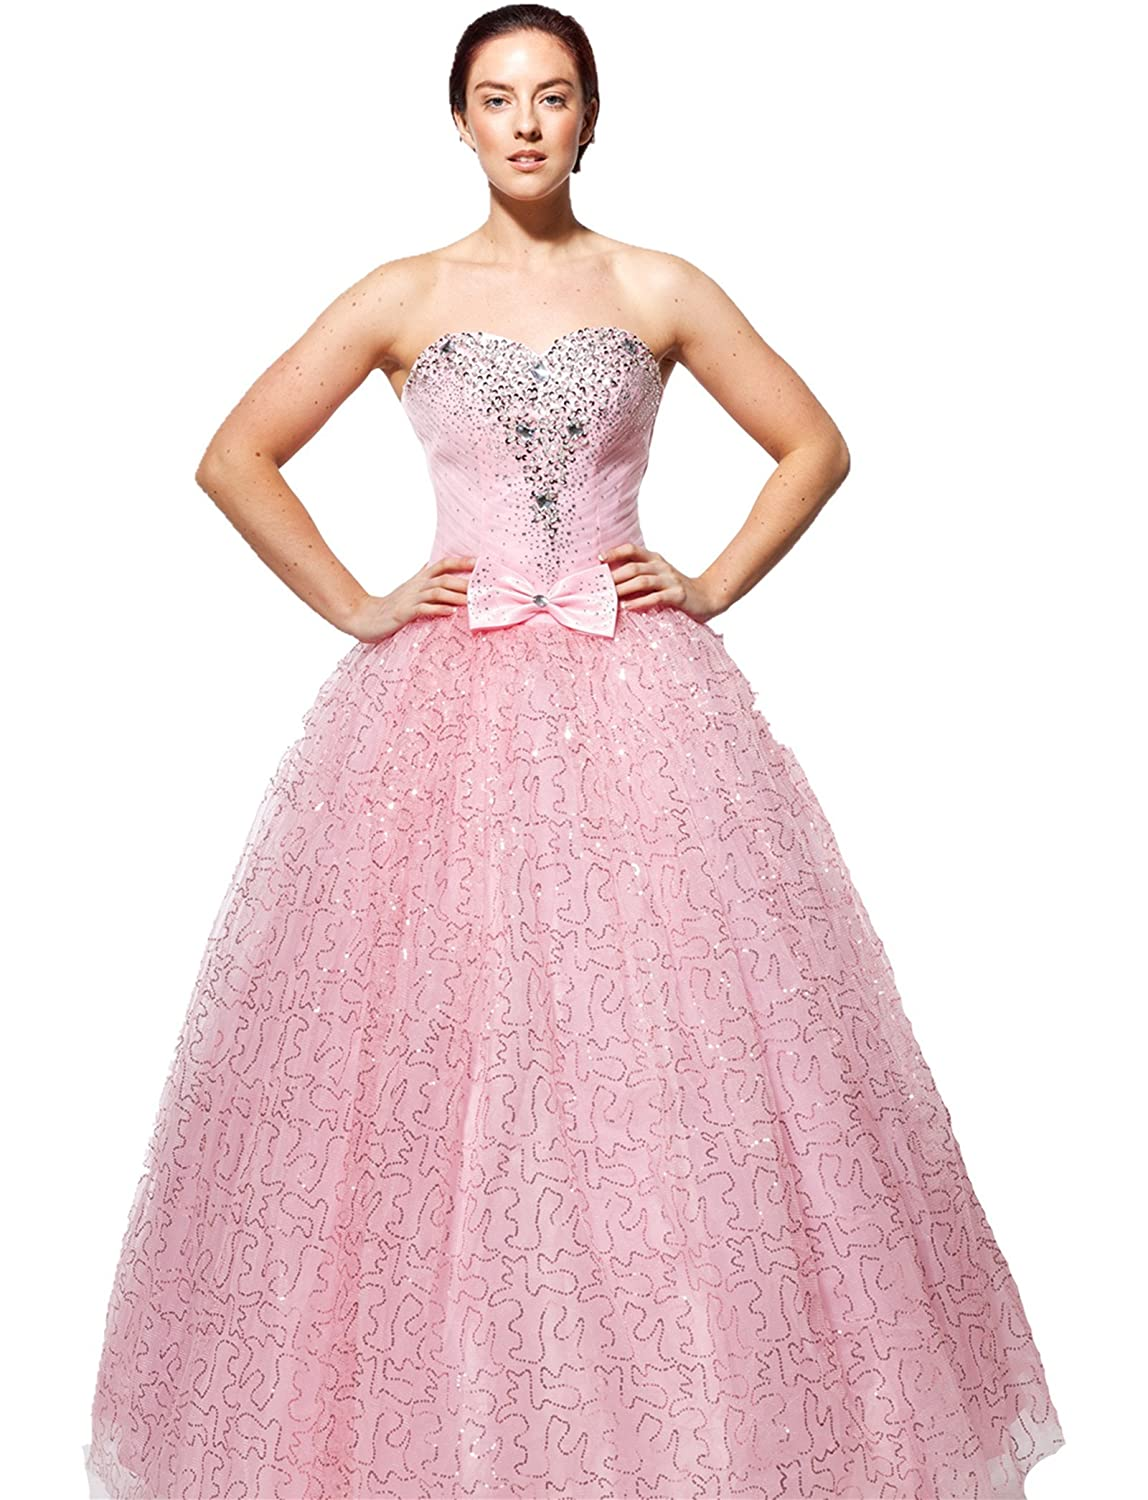 atopdress Wt09 BALL evening prom sequined gown evening dress size 8-20 (6, Pink): Amazon.co.uk: Clothing